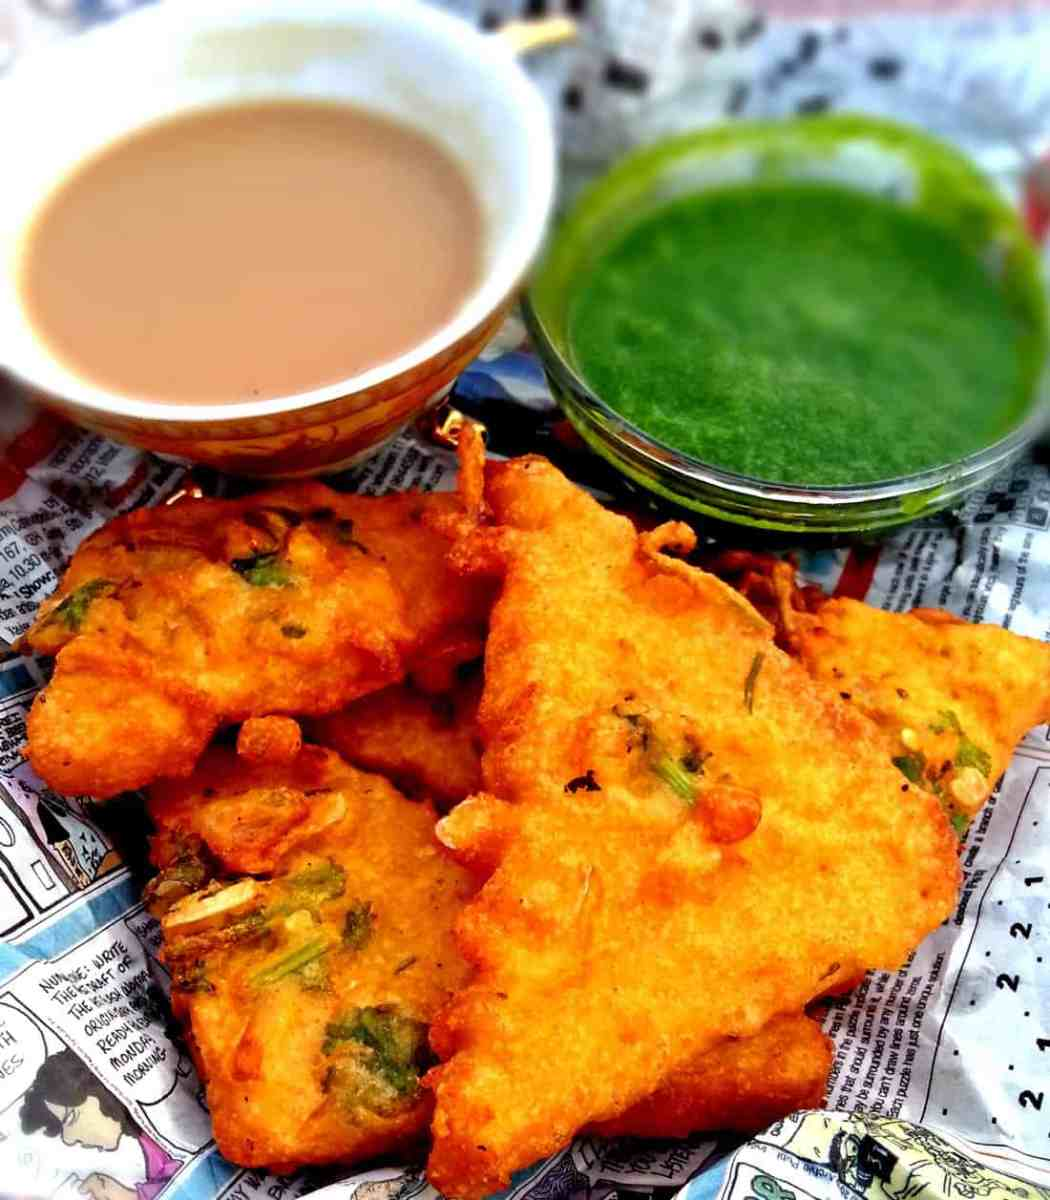 Garlic Bread Pakora -  Garlic Bread Fritters